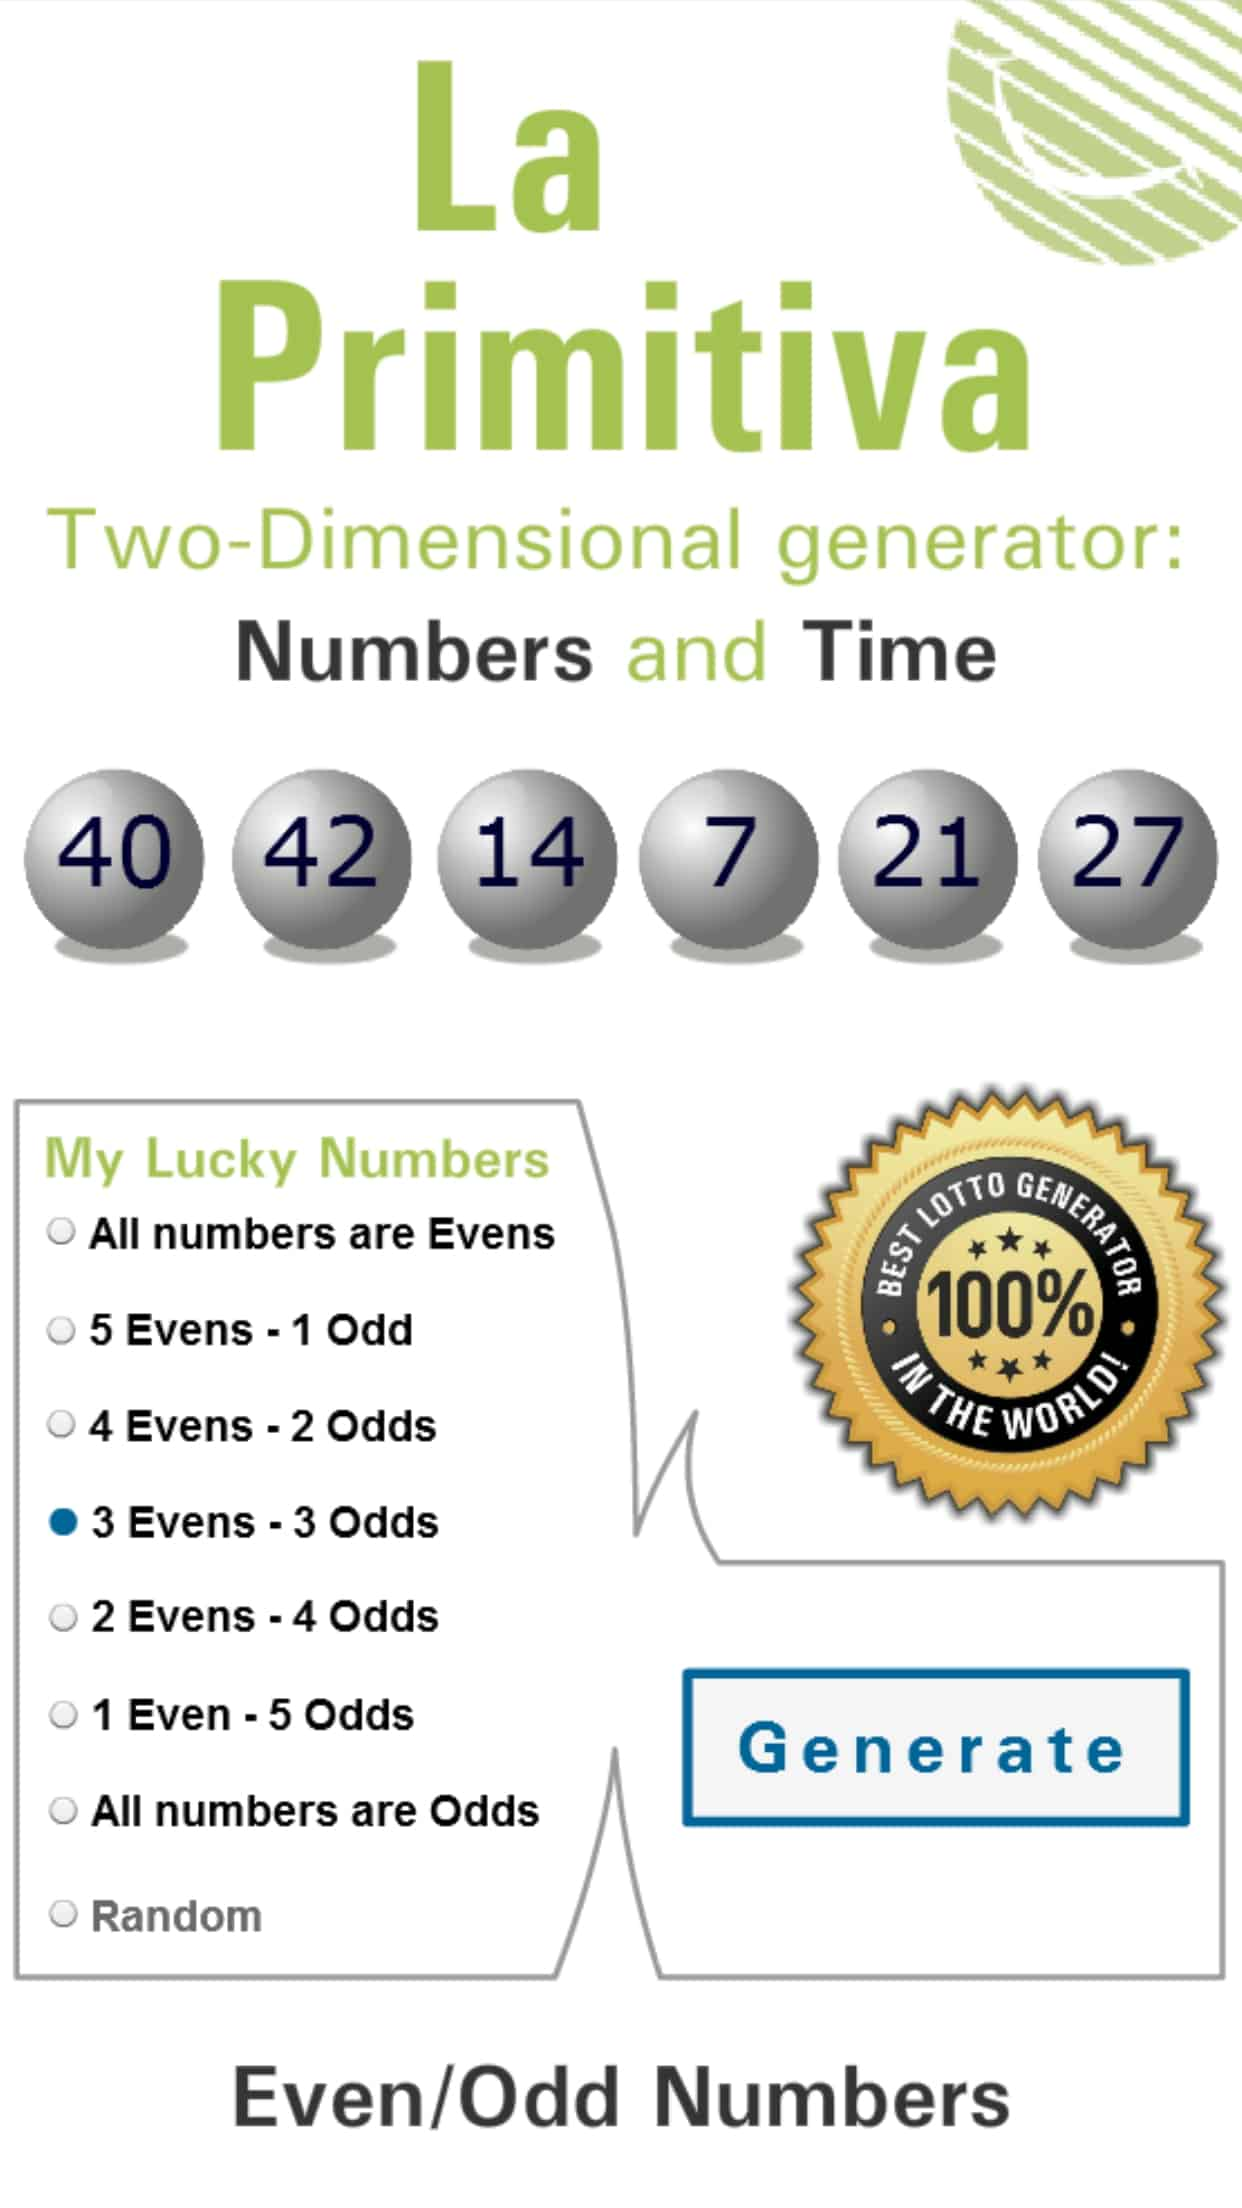 La Primitiva - Spanish Lottery | Results, Tips & Winning Numbers